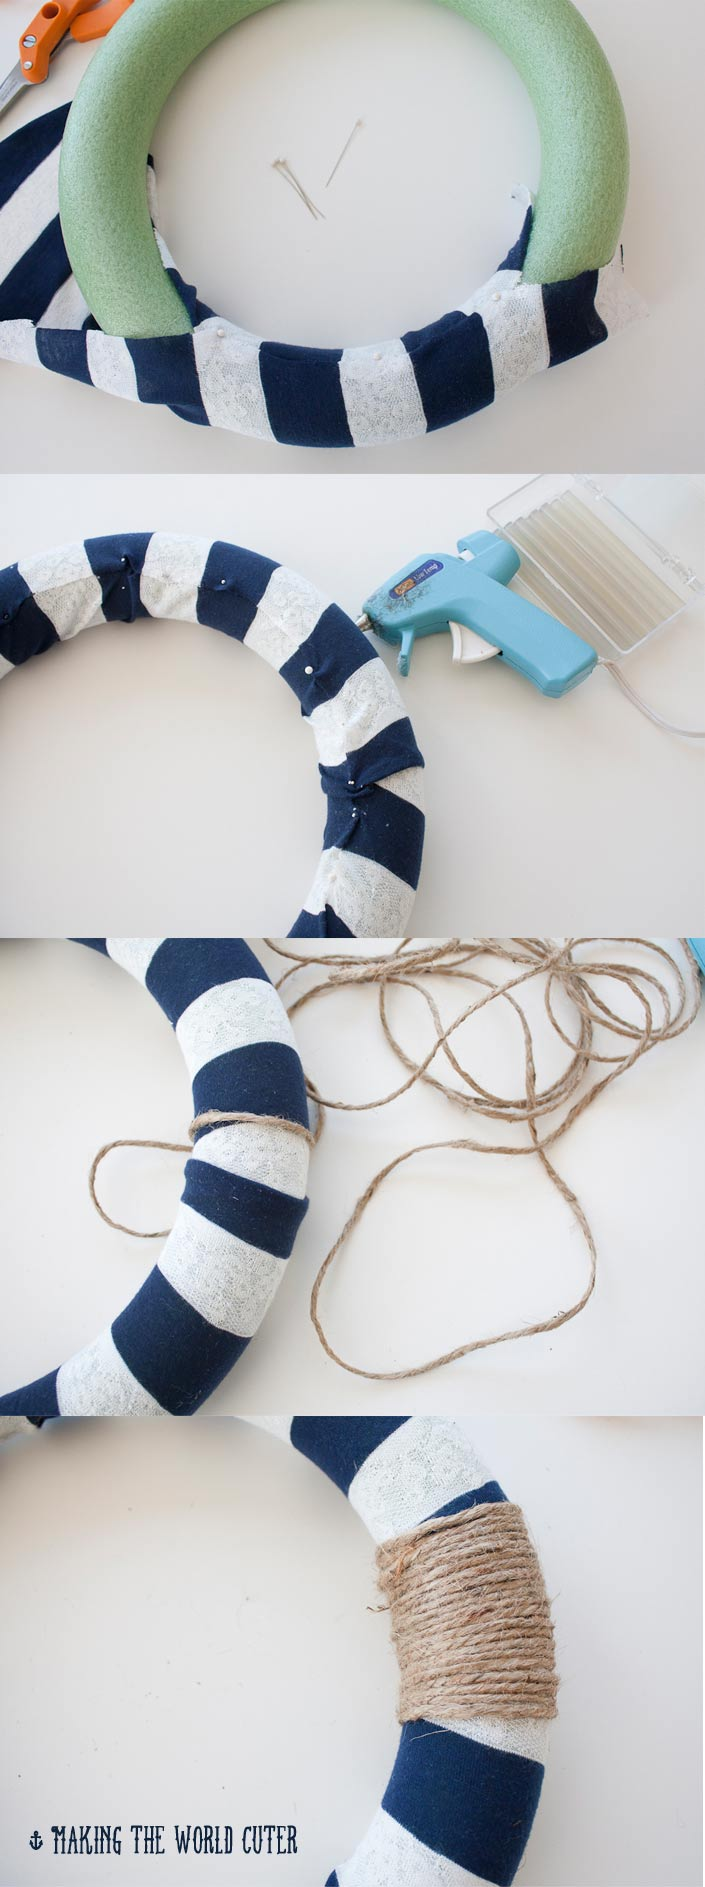 Nautical crafts to make - I Diy Wreath Nautical Decor From Making The World Cuter This Is So Cute I